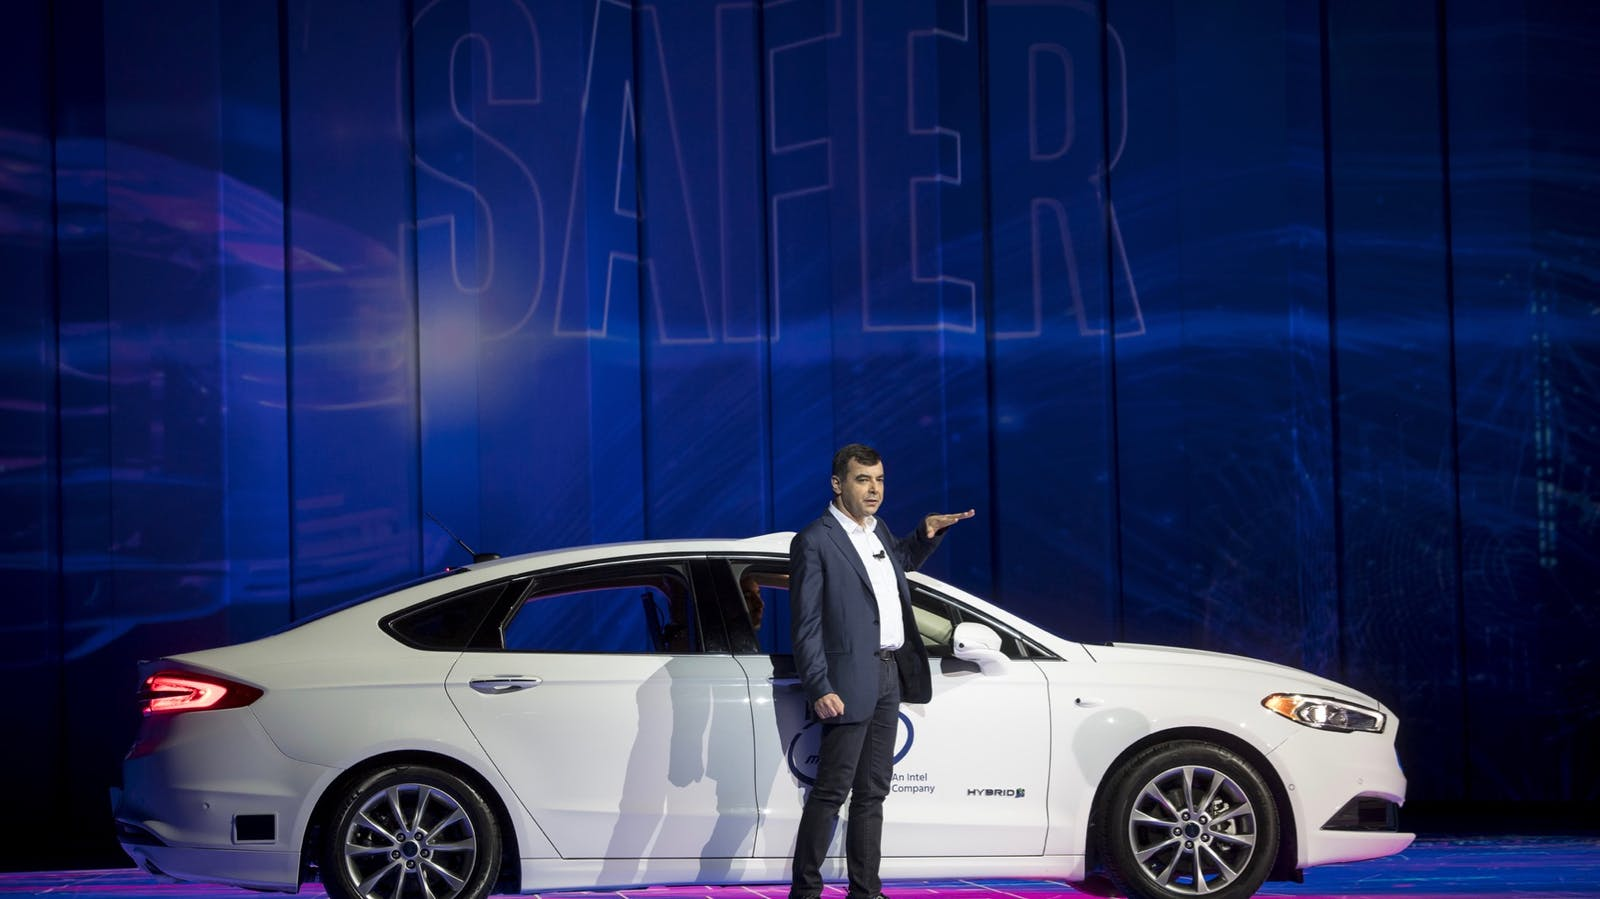 Mobileye CEO Amnon Shashua speaks at CES on Jan. 8. Photo: Bloomberg